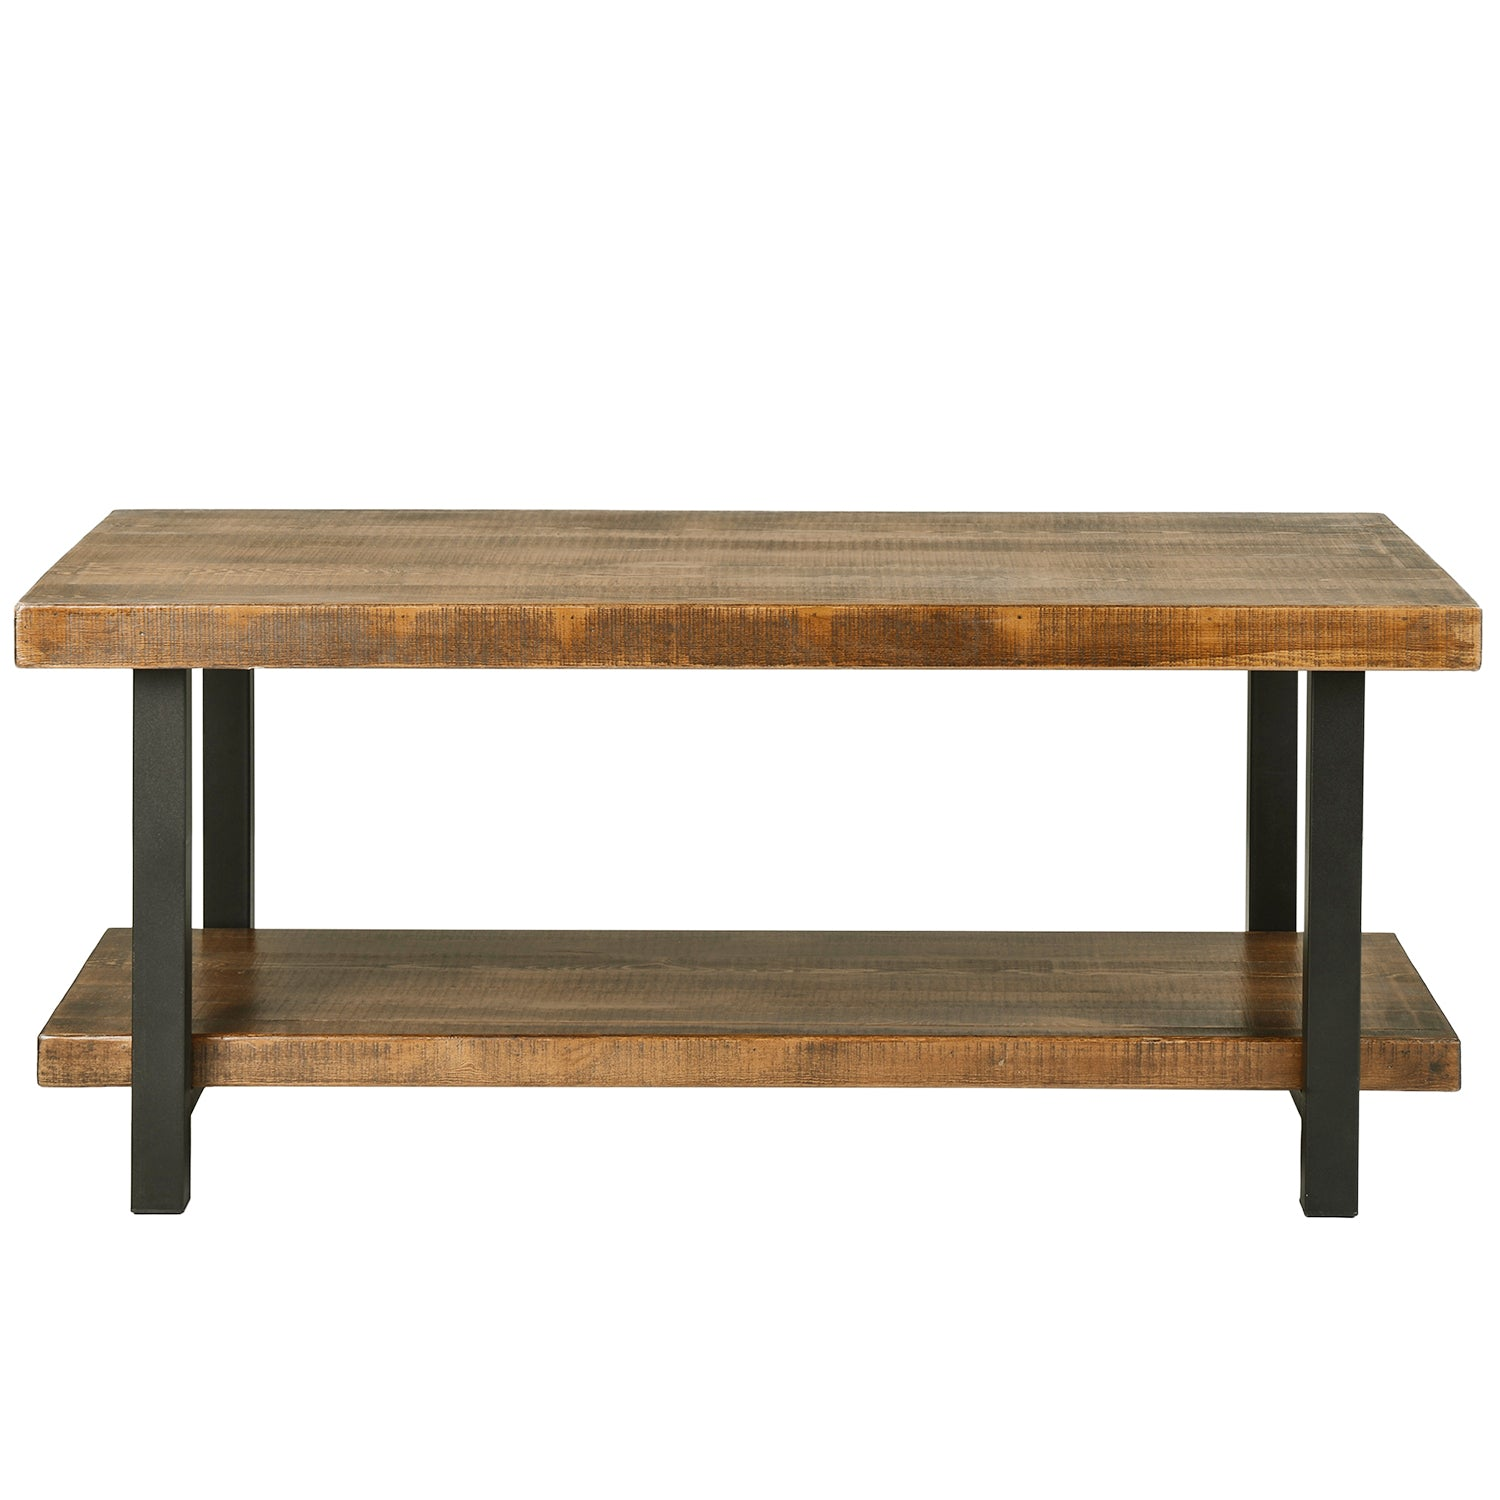 Rectangle Rustic Natural Coffee Table with Storage Shelf for Living Room Easy Assembly